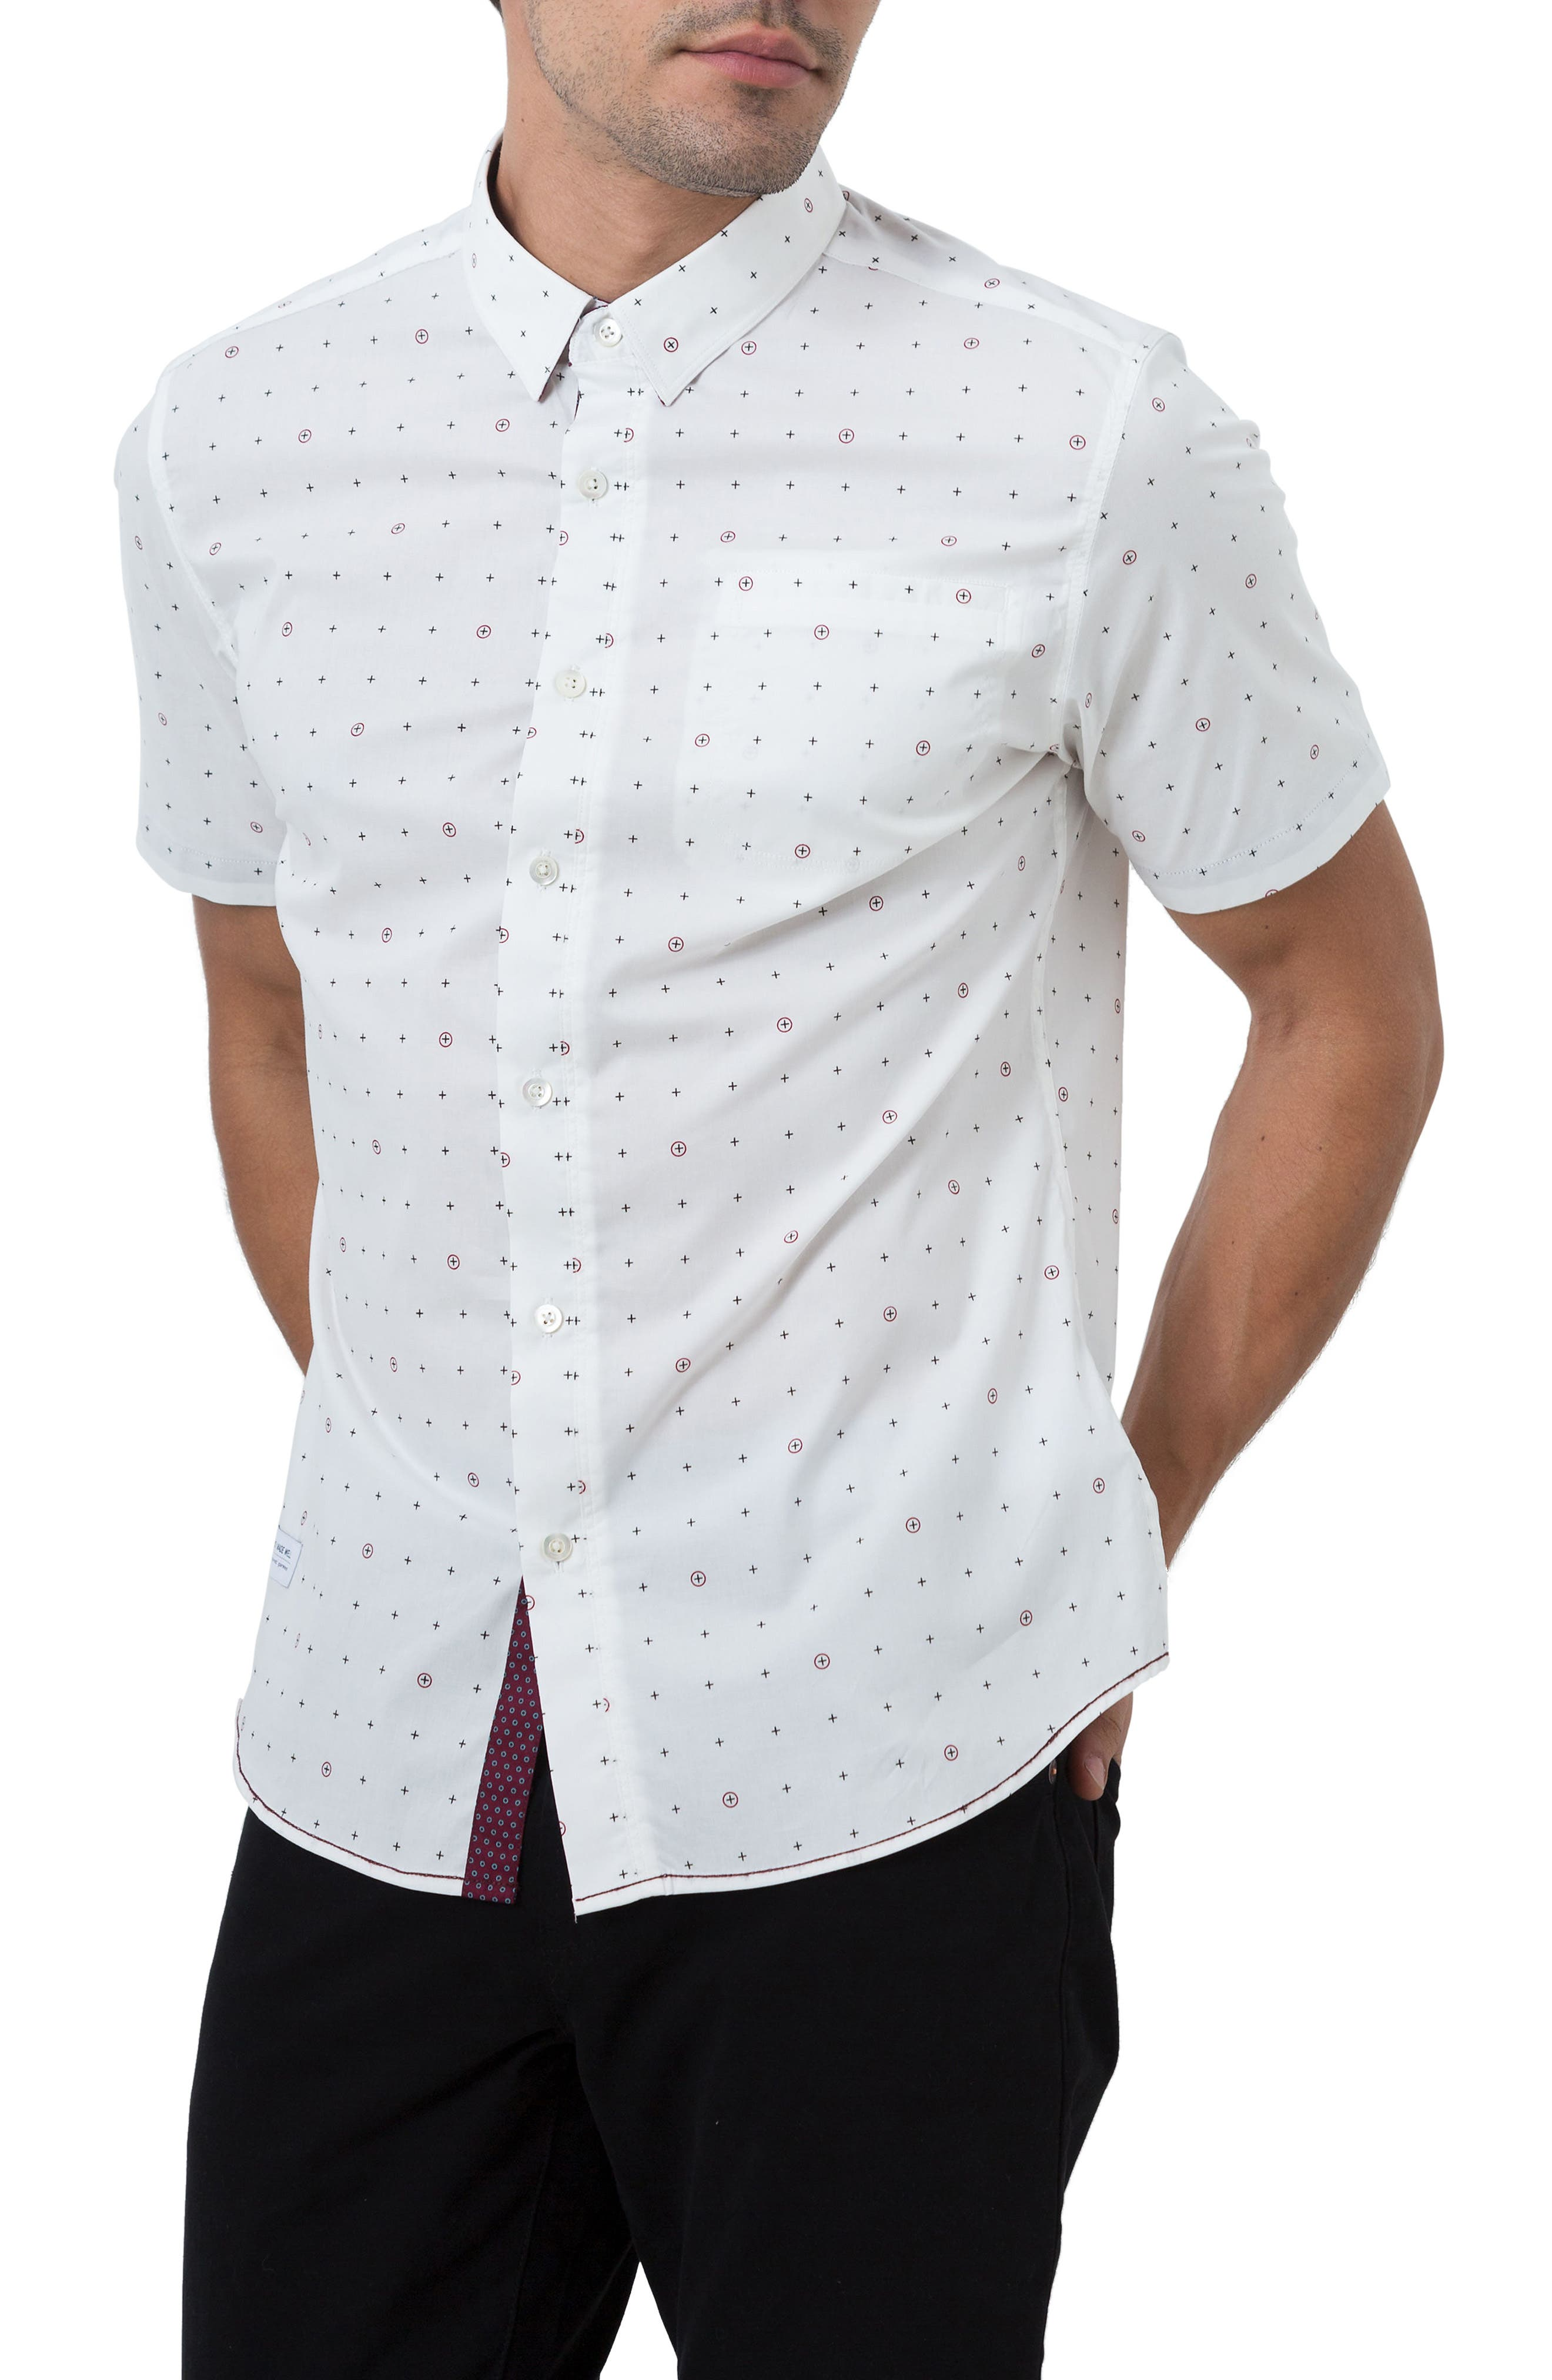 Holiday in Spain Woven Shirt,                         Main,                         color, Natural